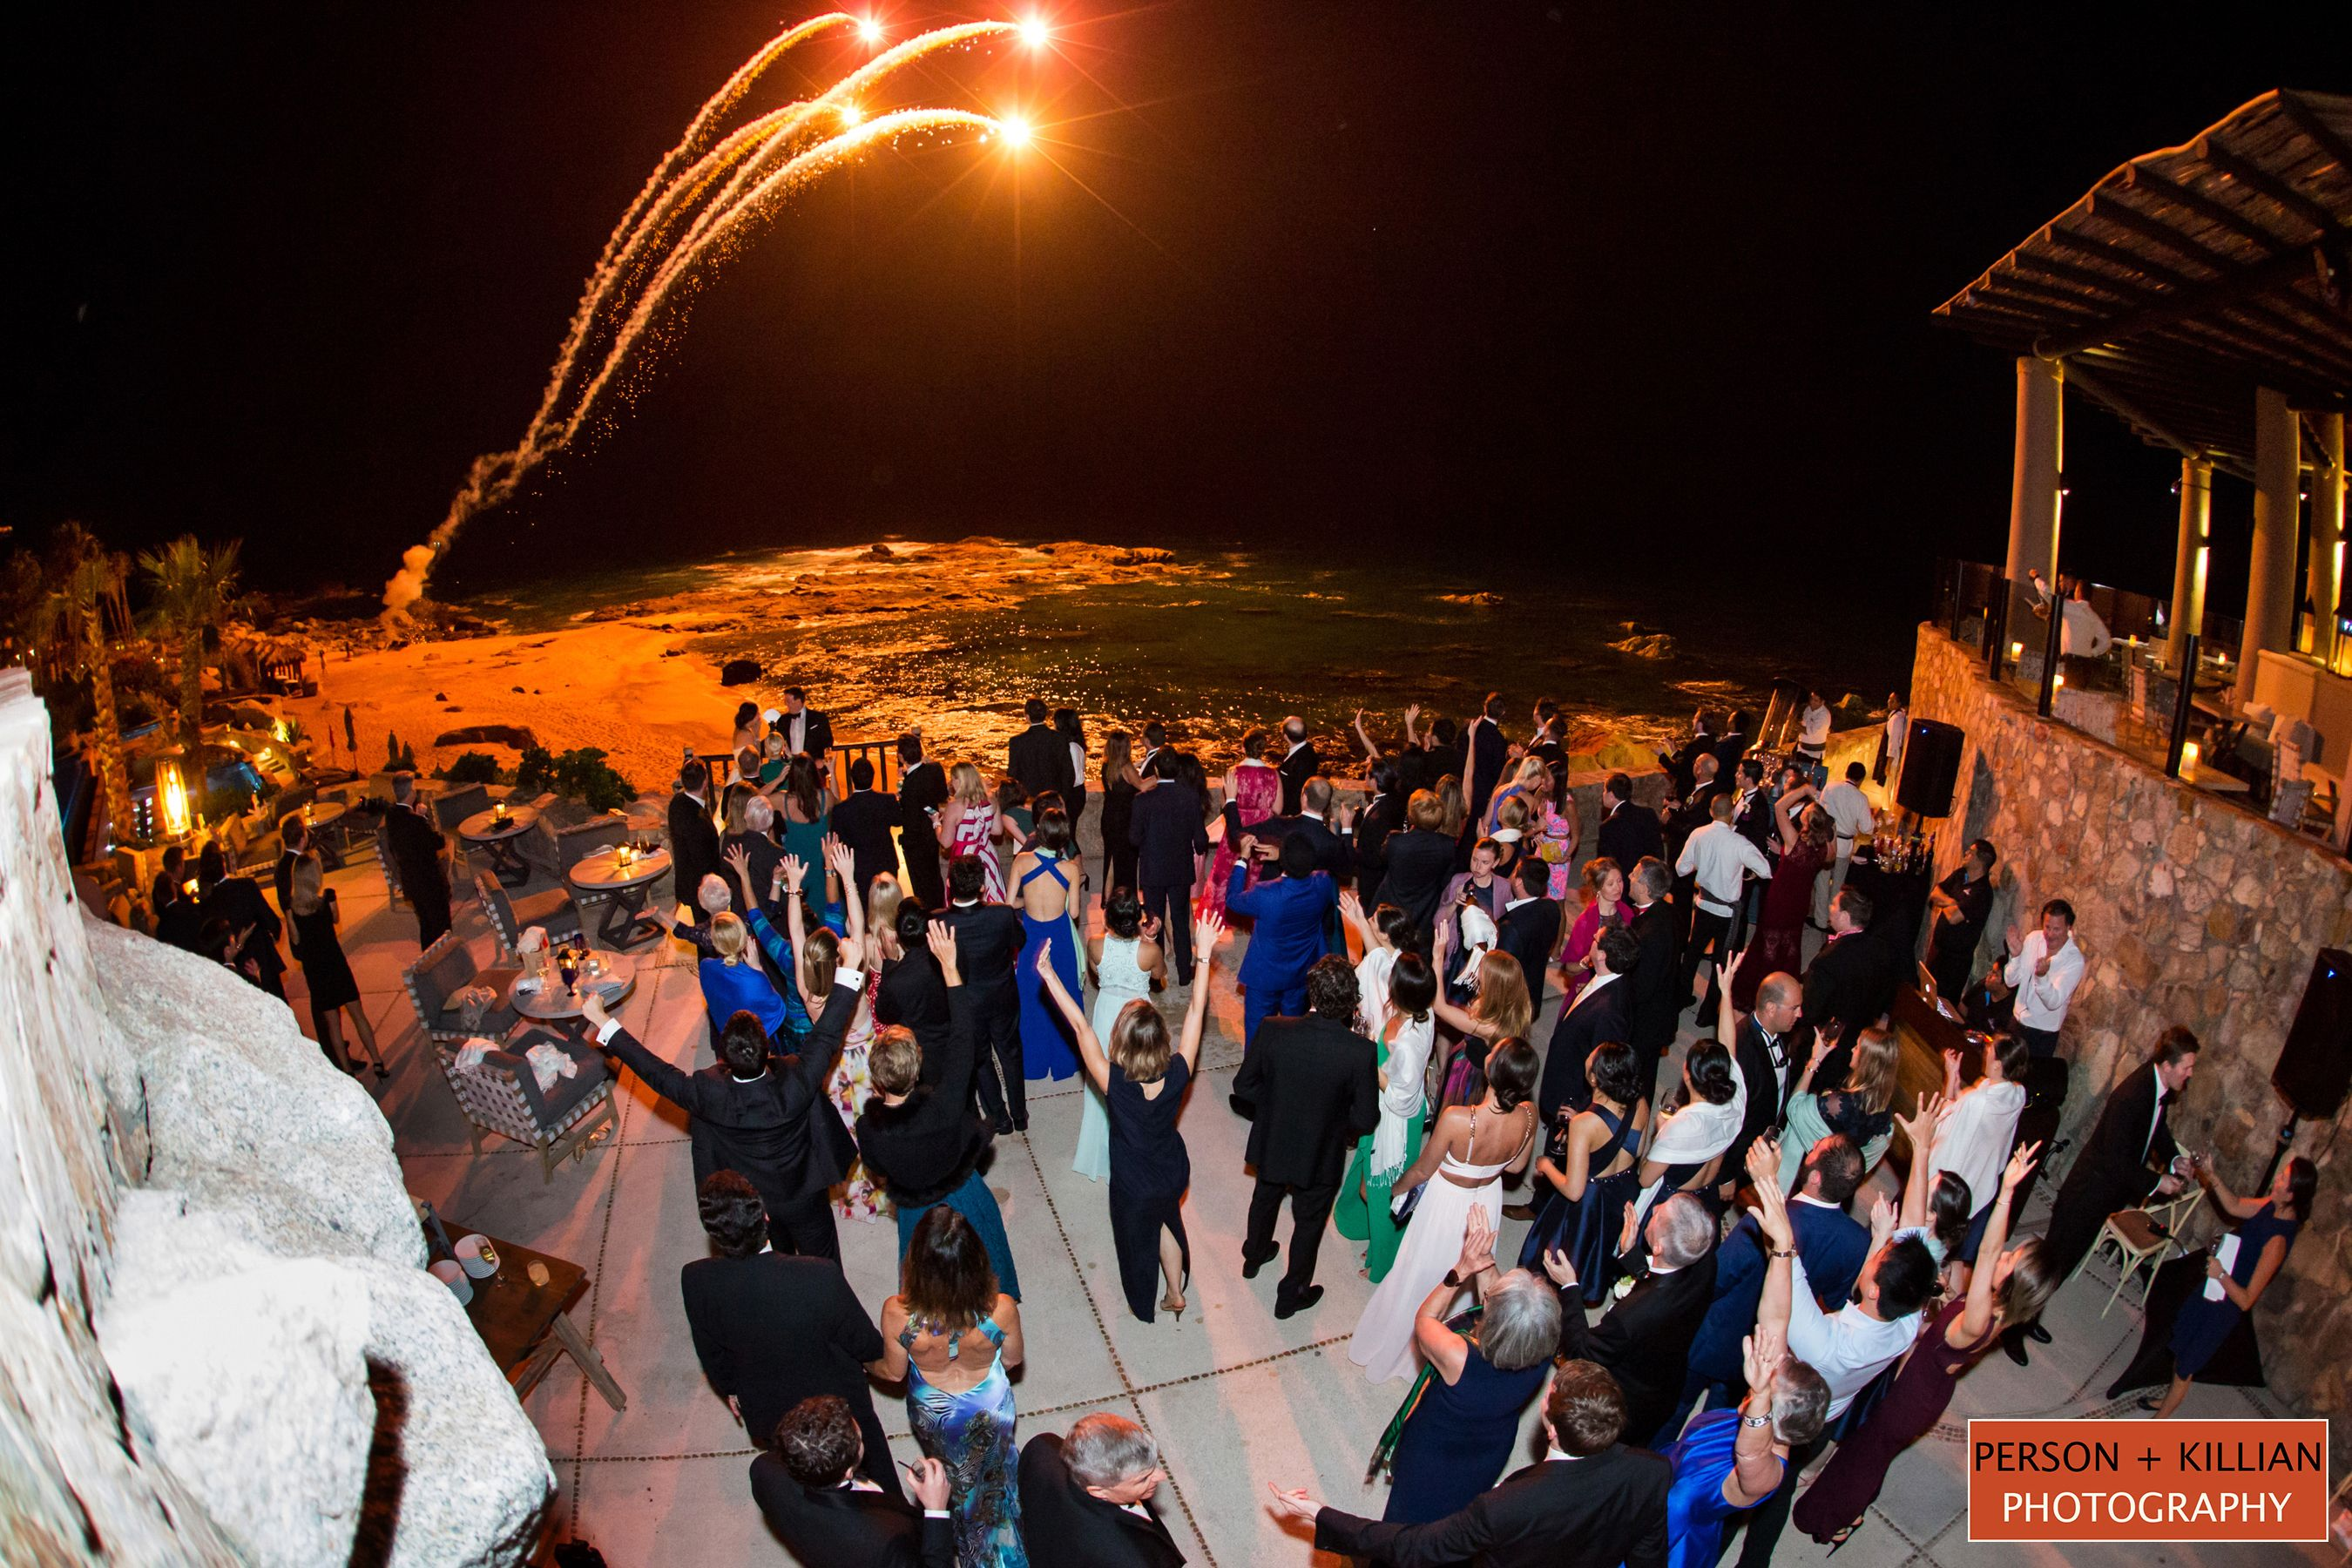 The groom surprised the bride with fireworks... a magical